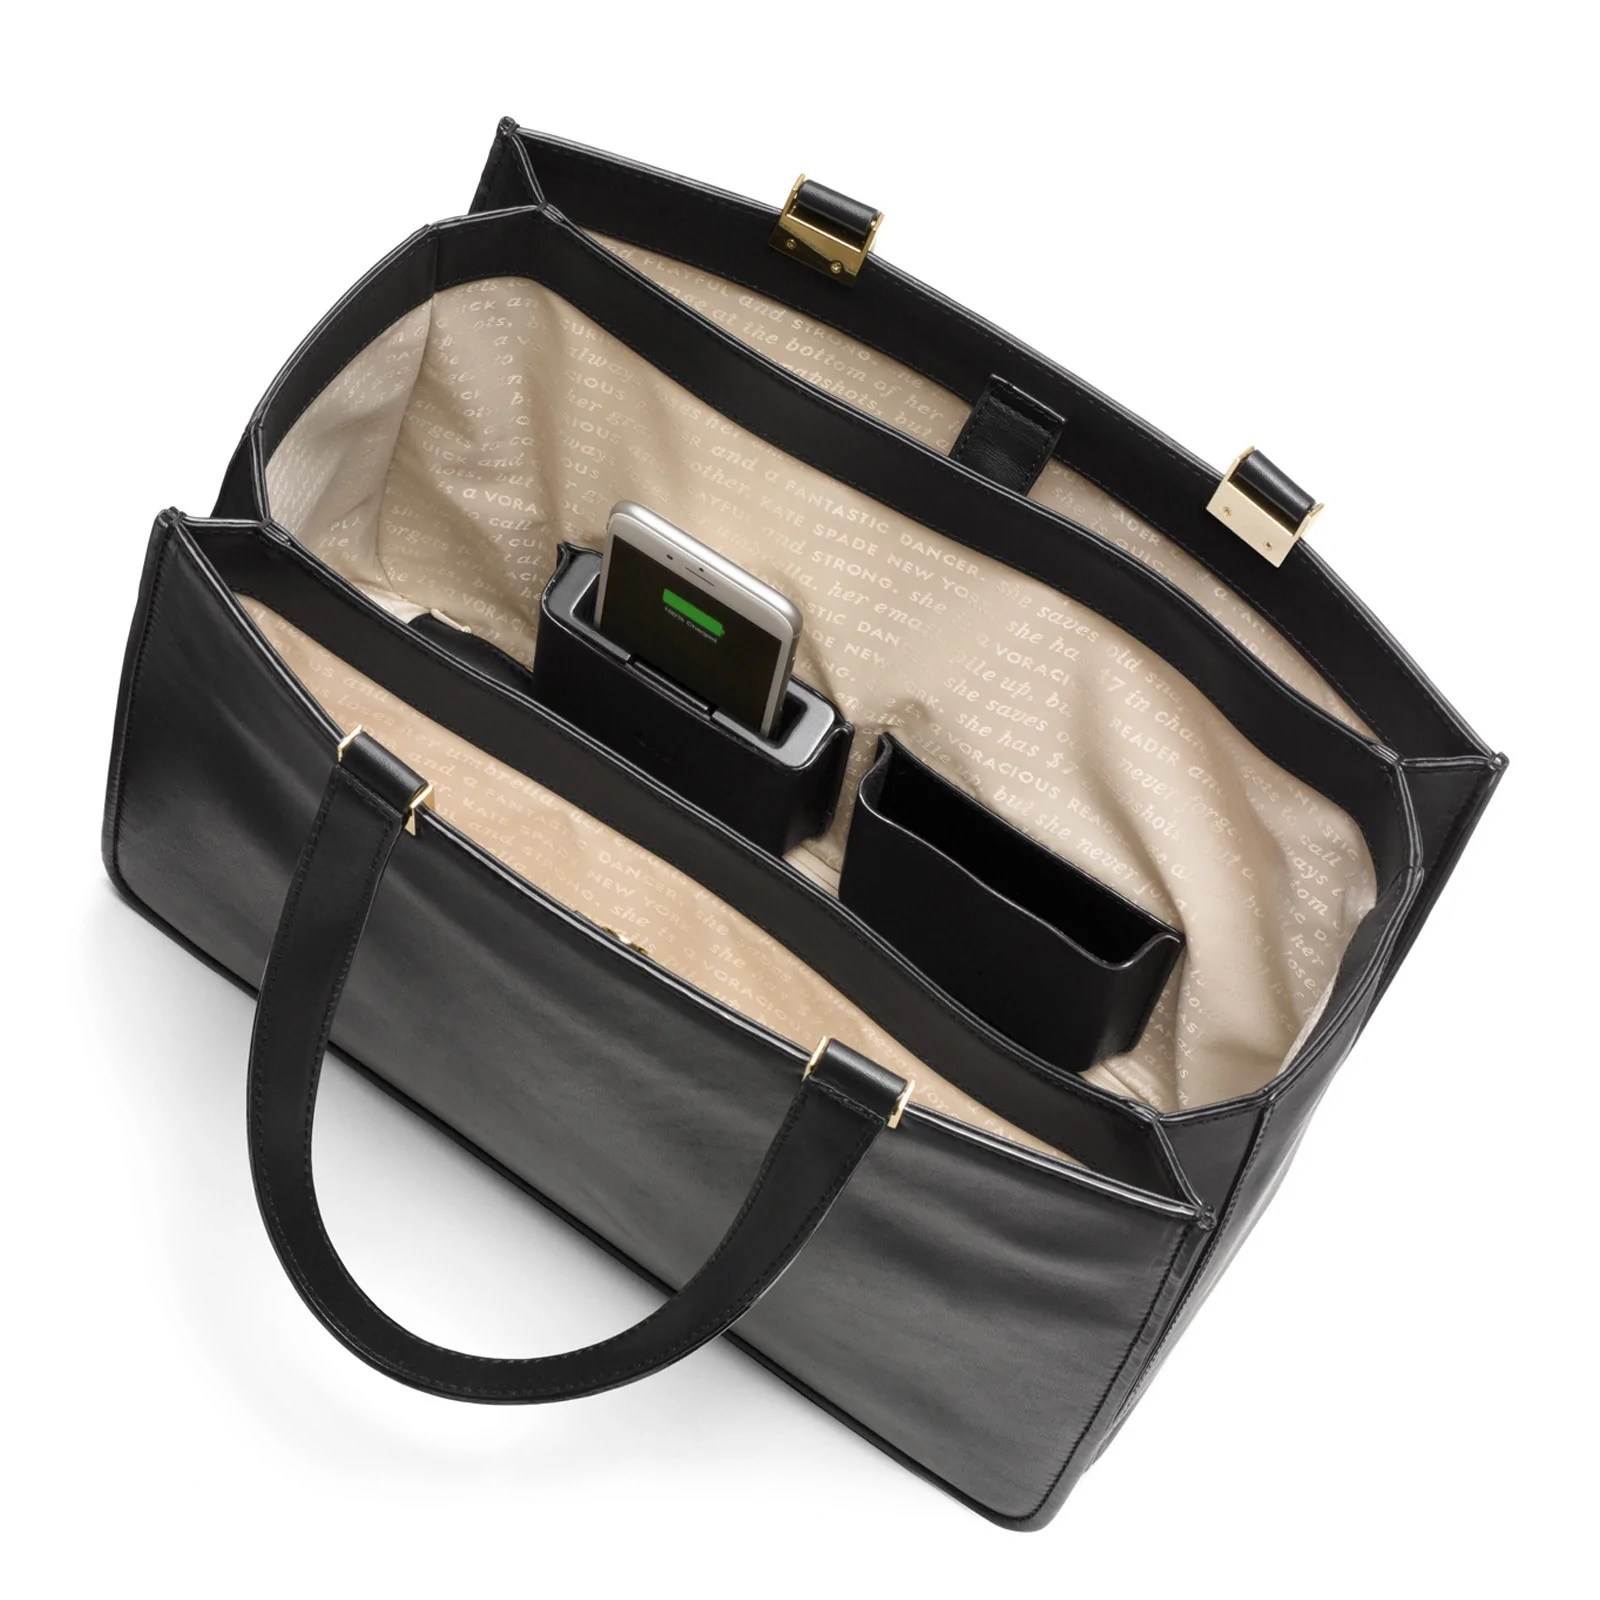 0489ba9a585d Frieda Handbag With Phone Charger Black Tote Everpurse